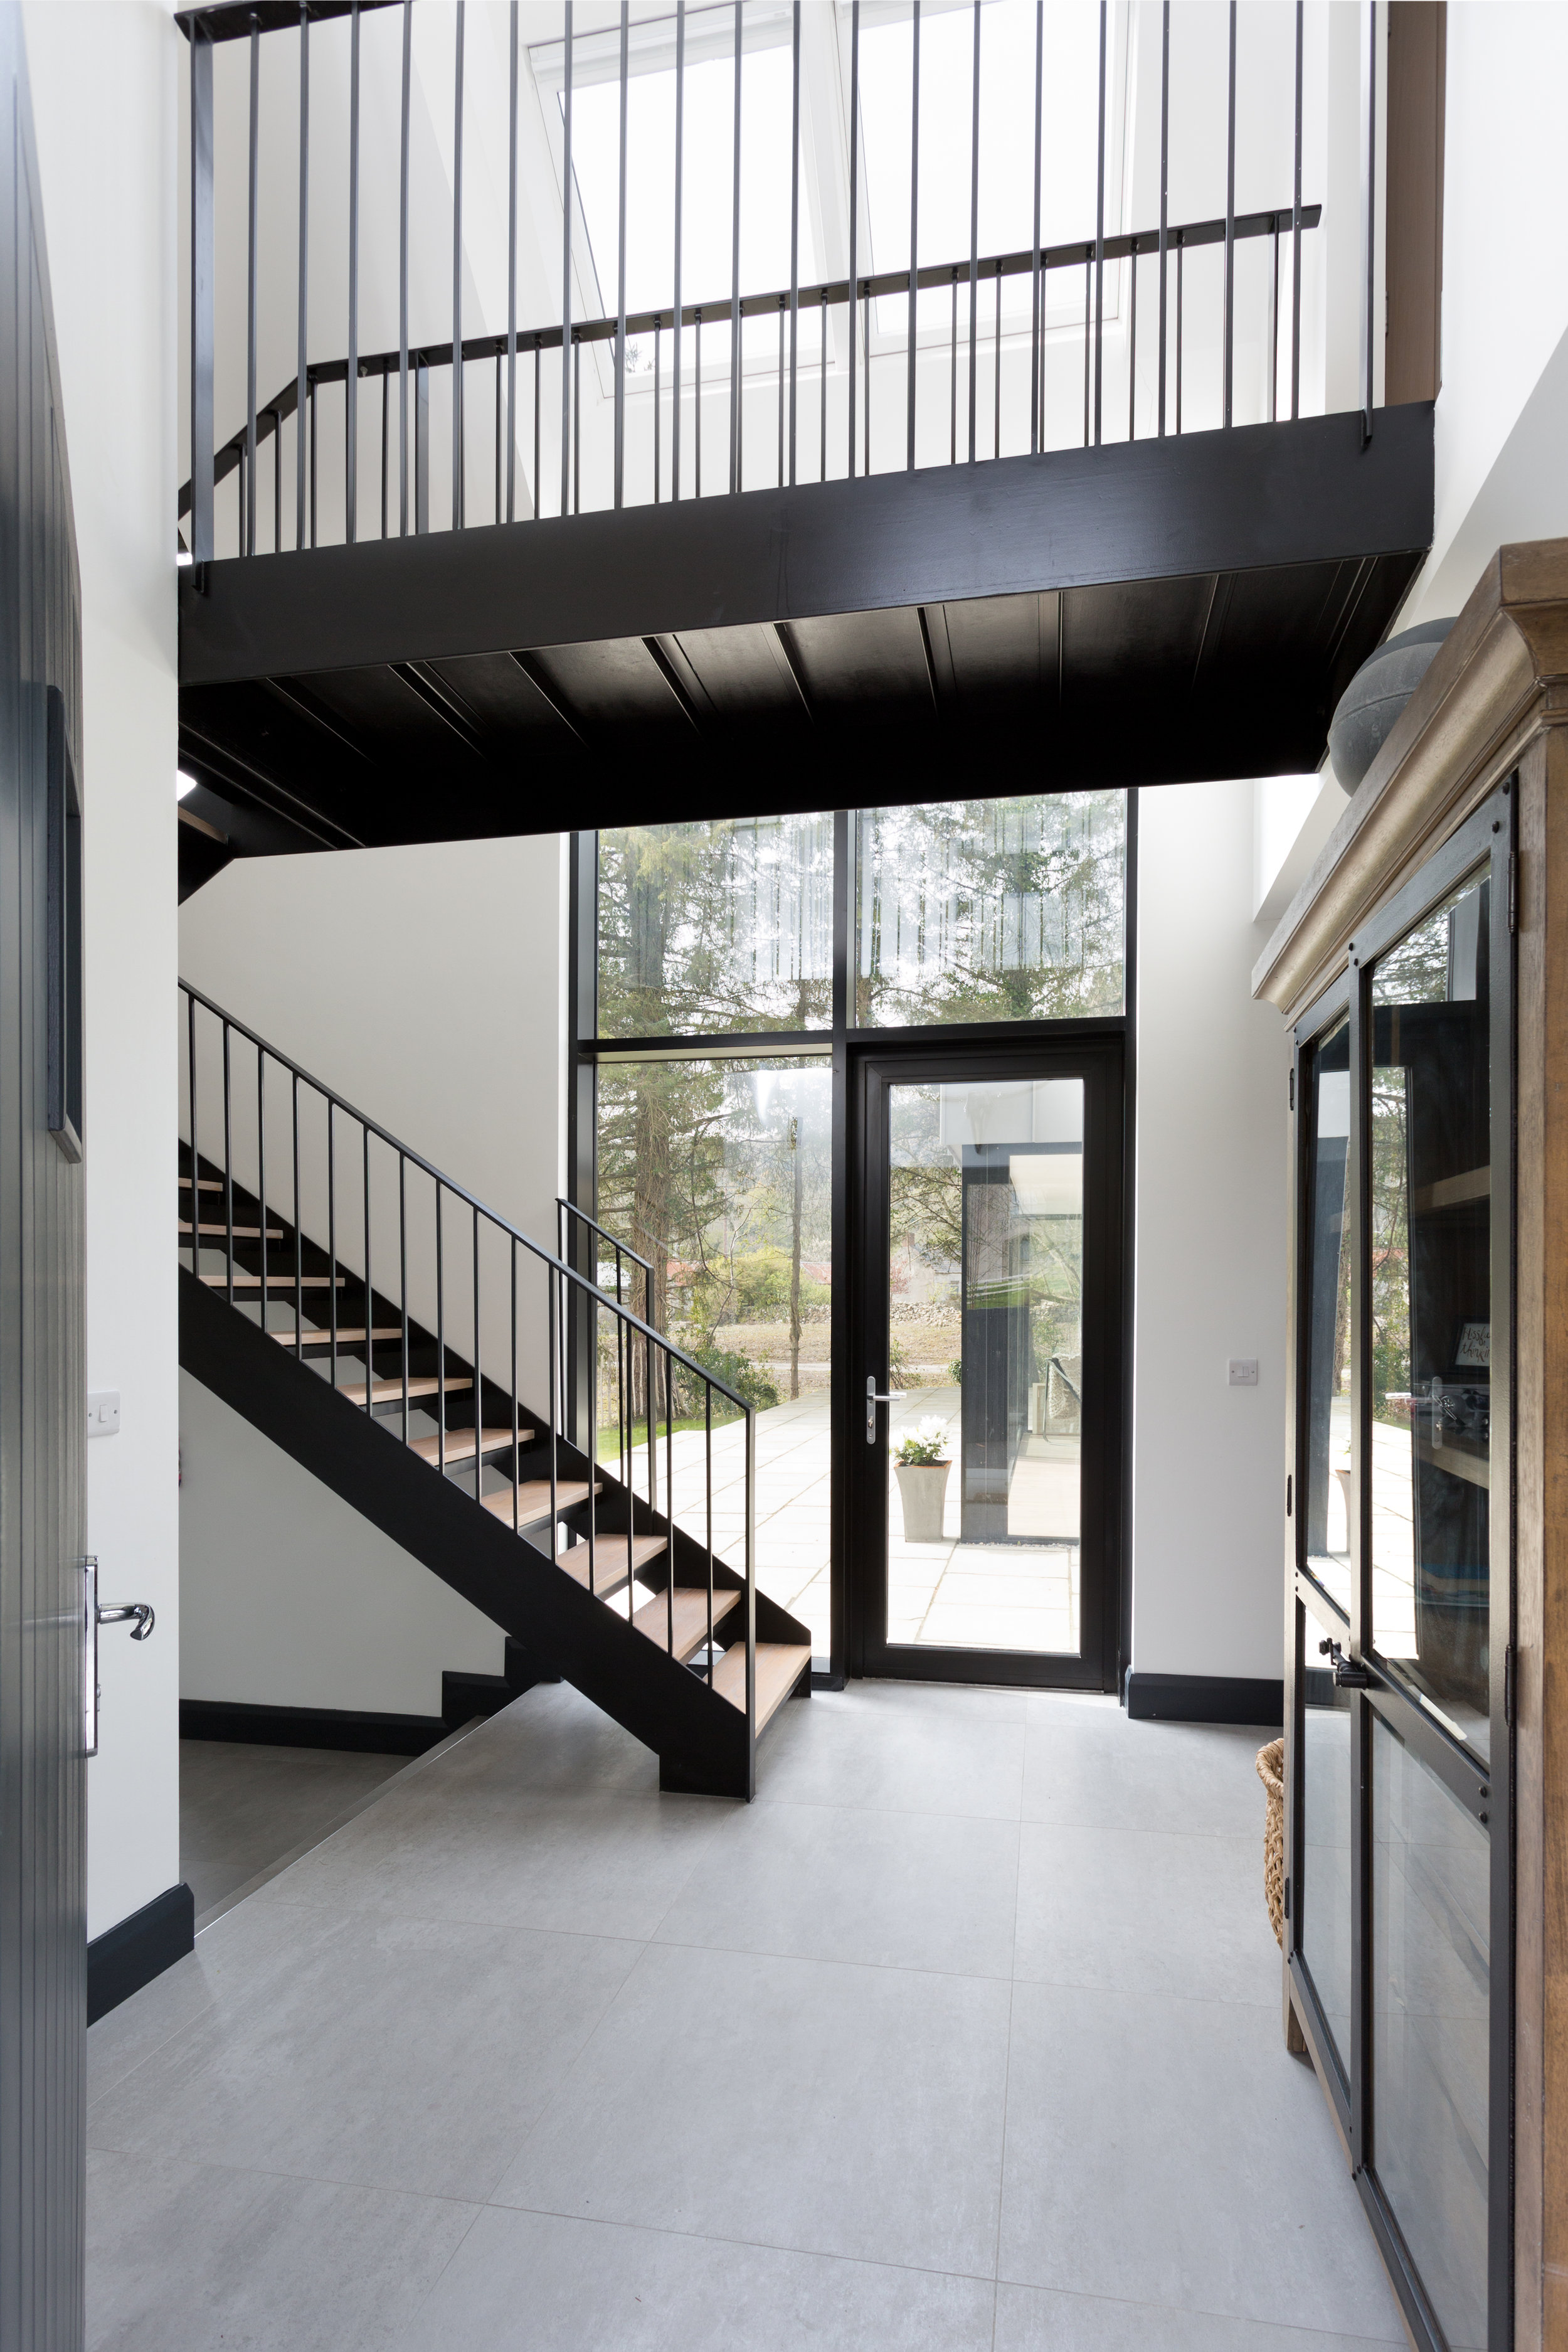 The open staircase allows light to flow through the house.